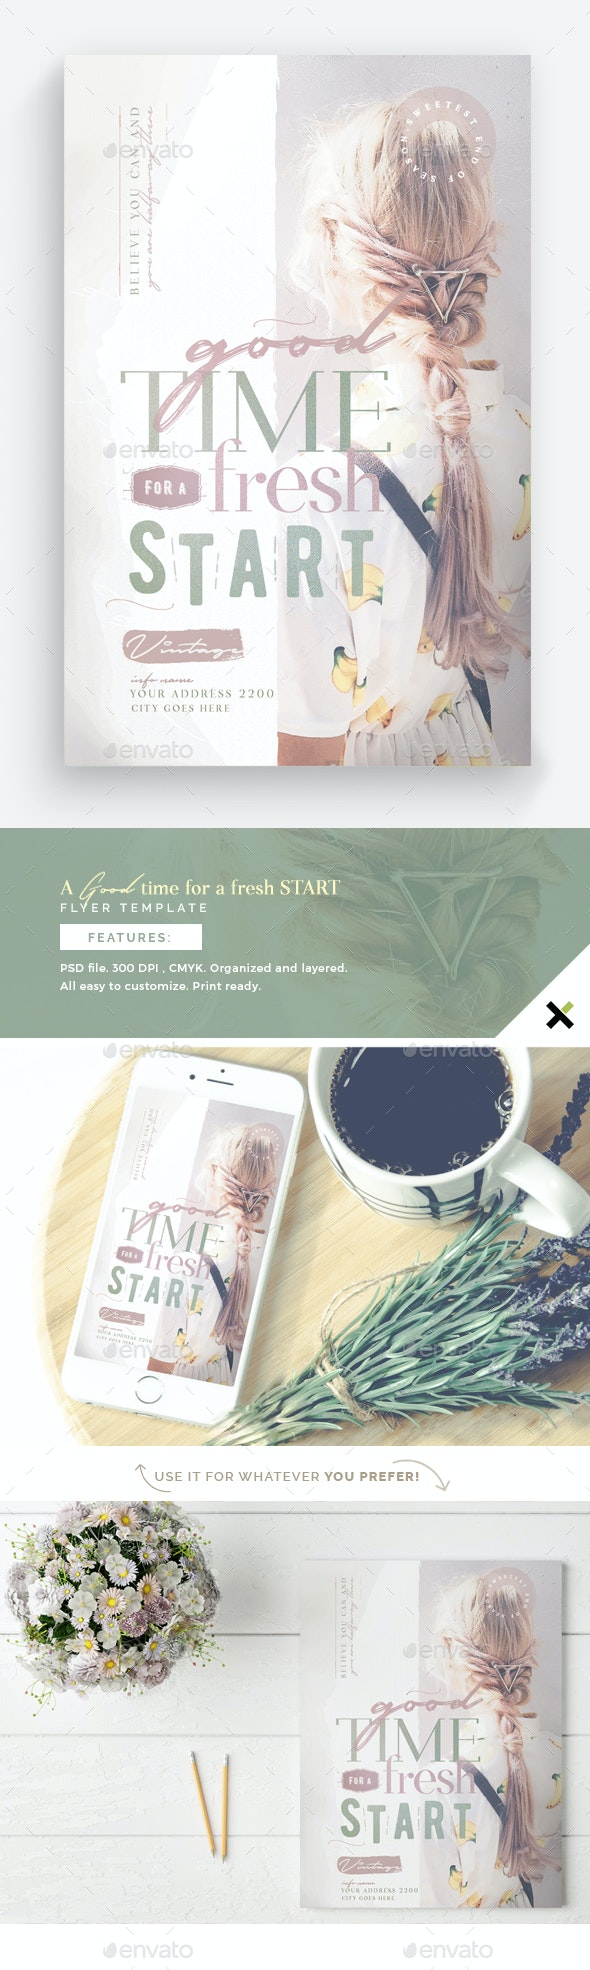 A Good Time For A Fresh Start Flyer Template - Flyers Print Templates